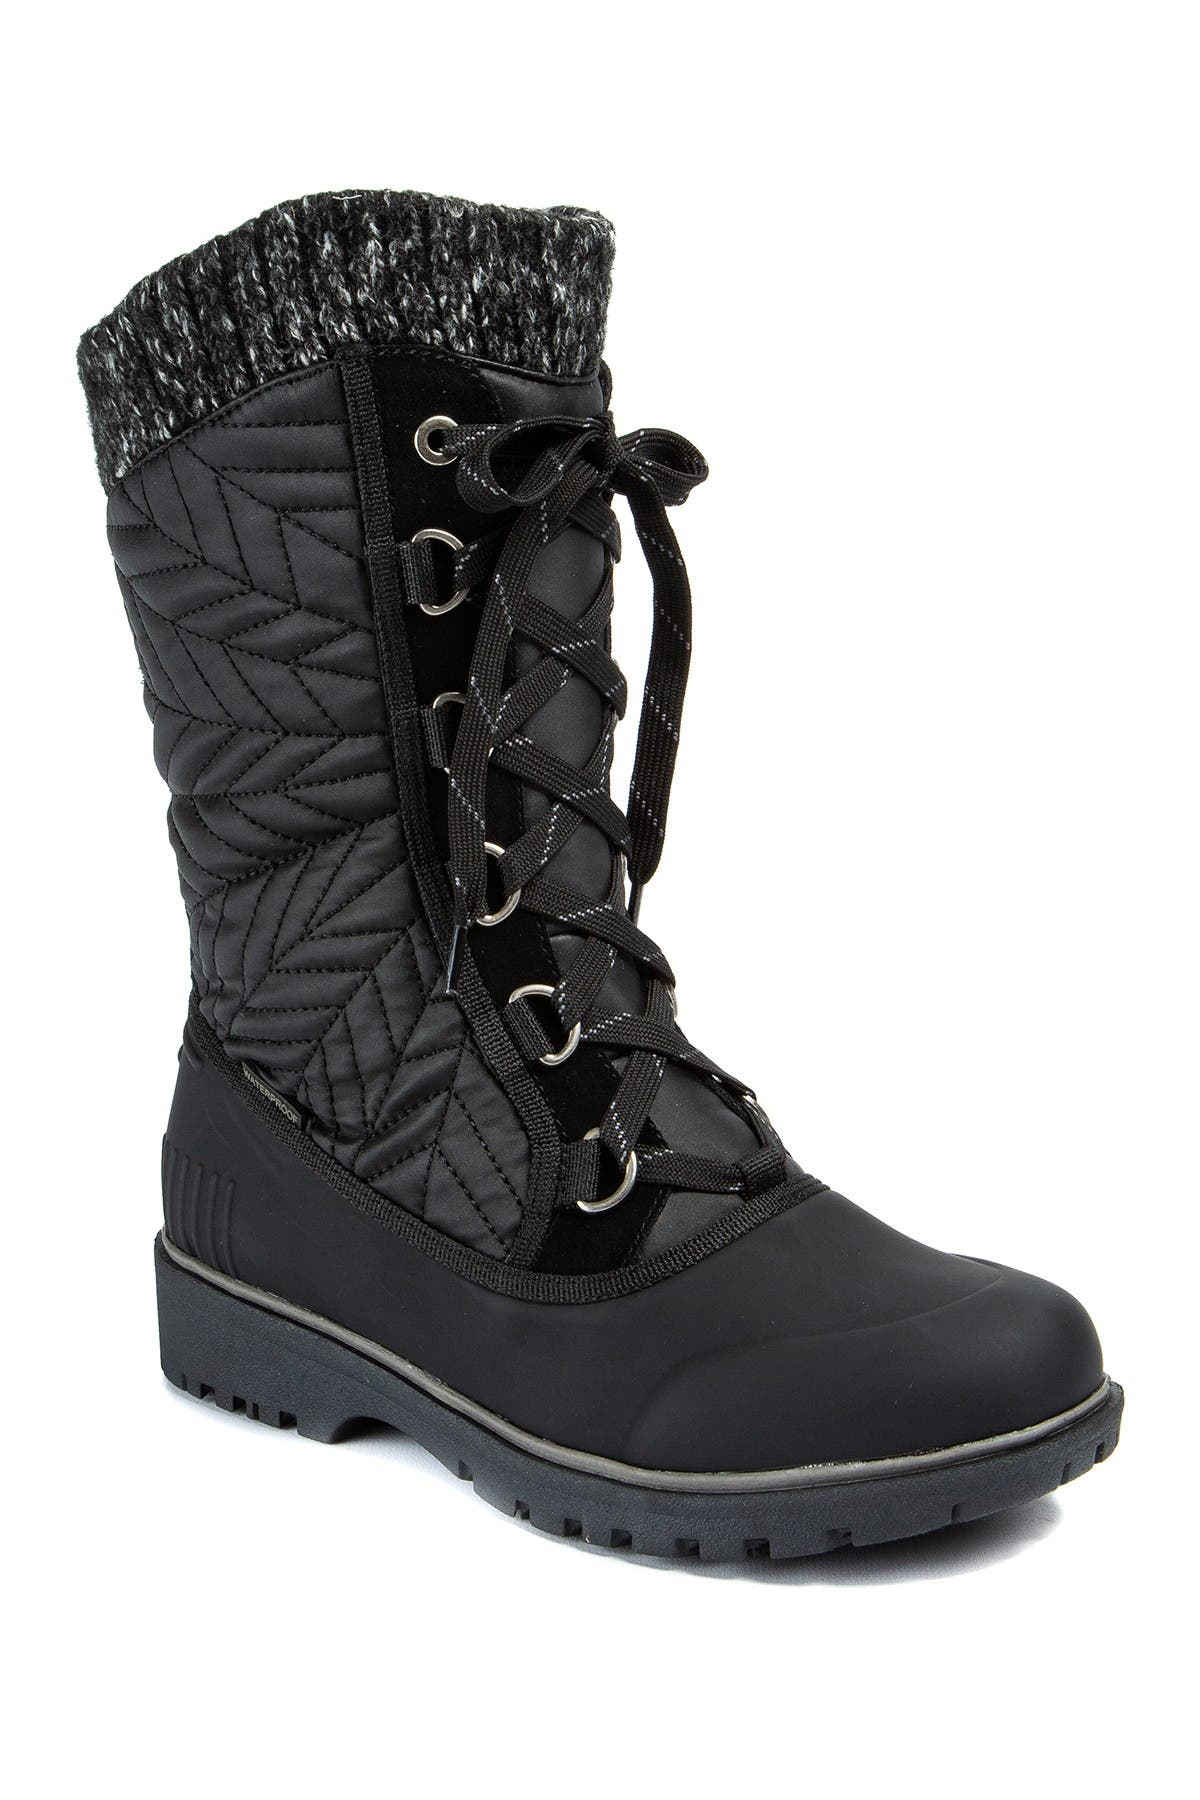 Image of BareTraps Stark Waterproof Thermal Cold Weather Boot